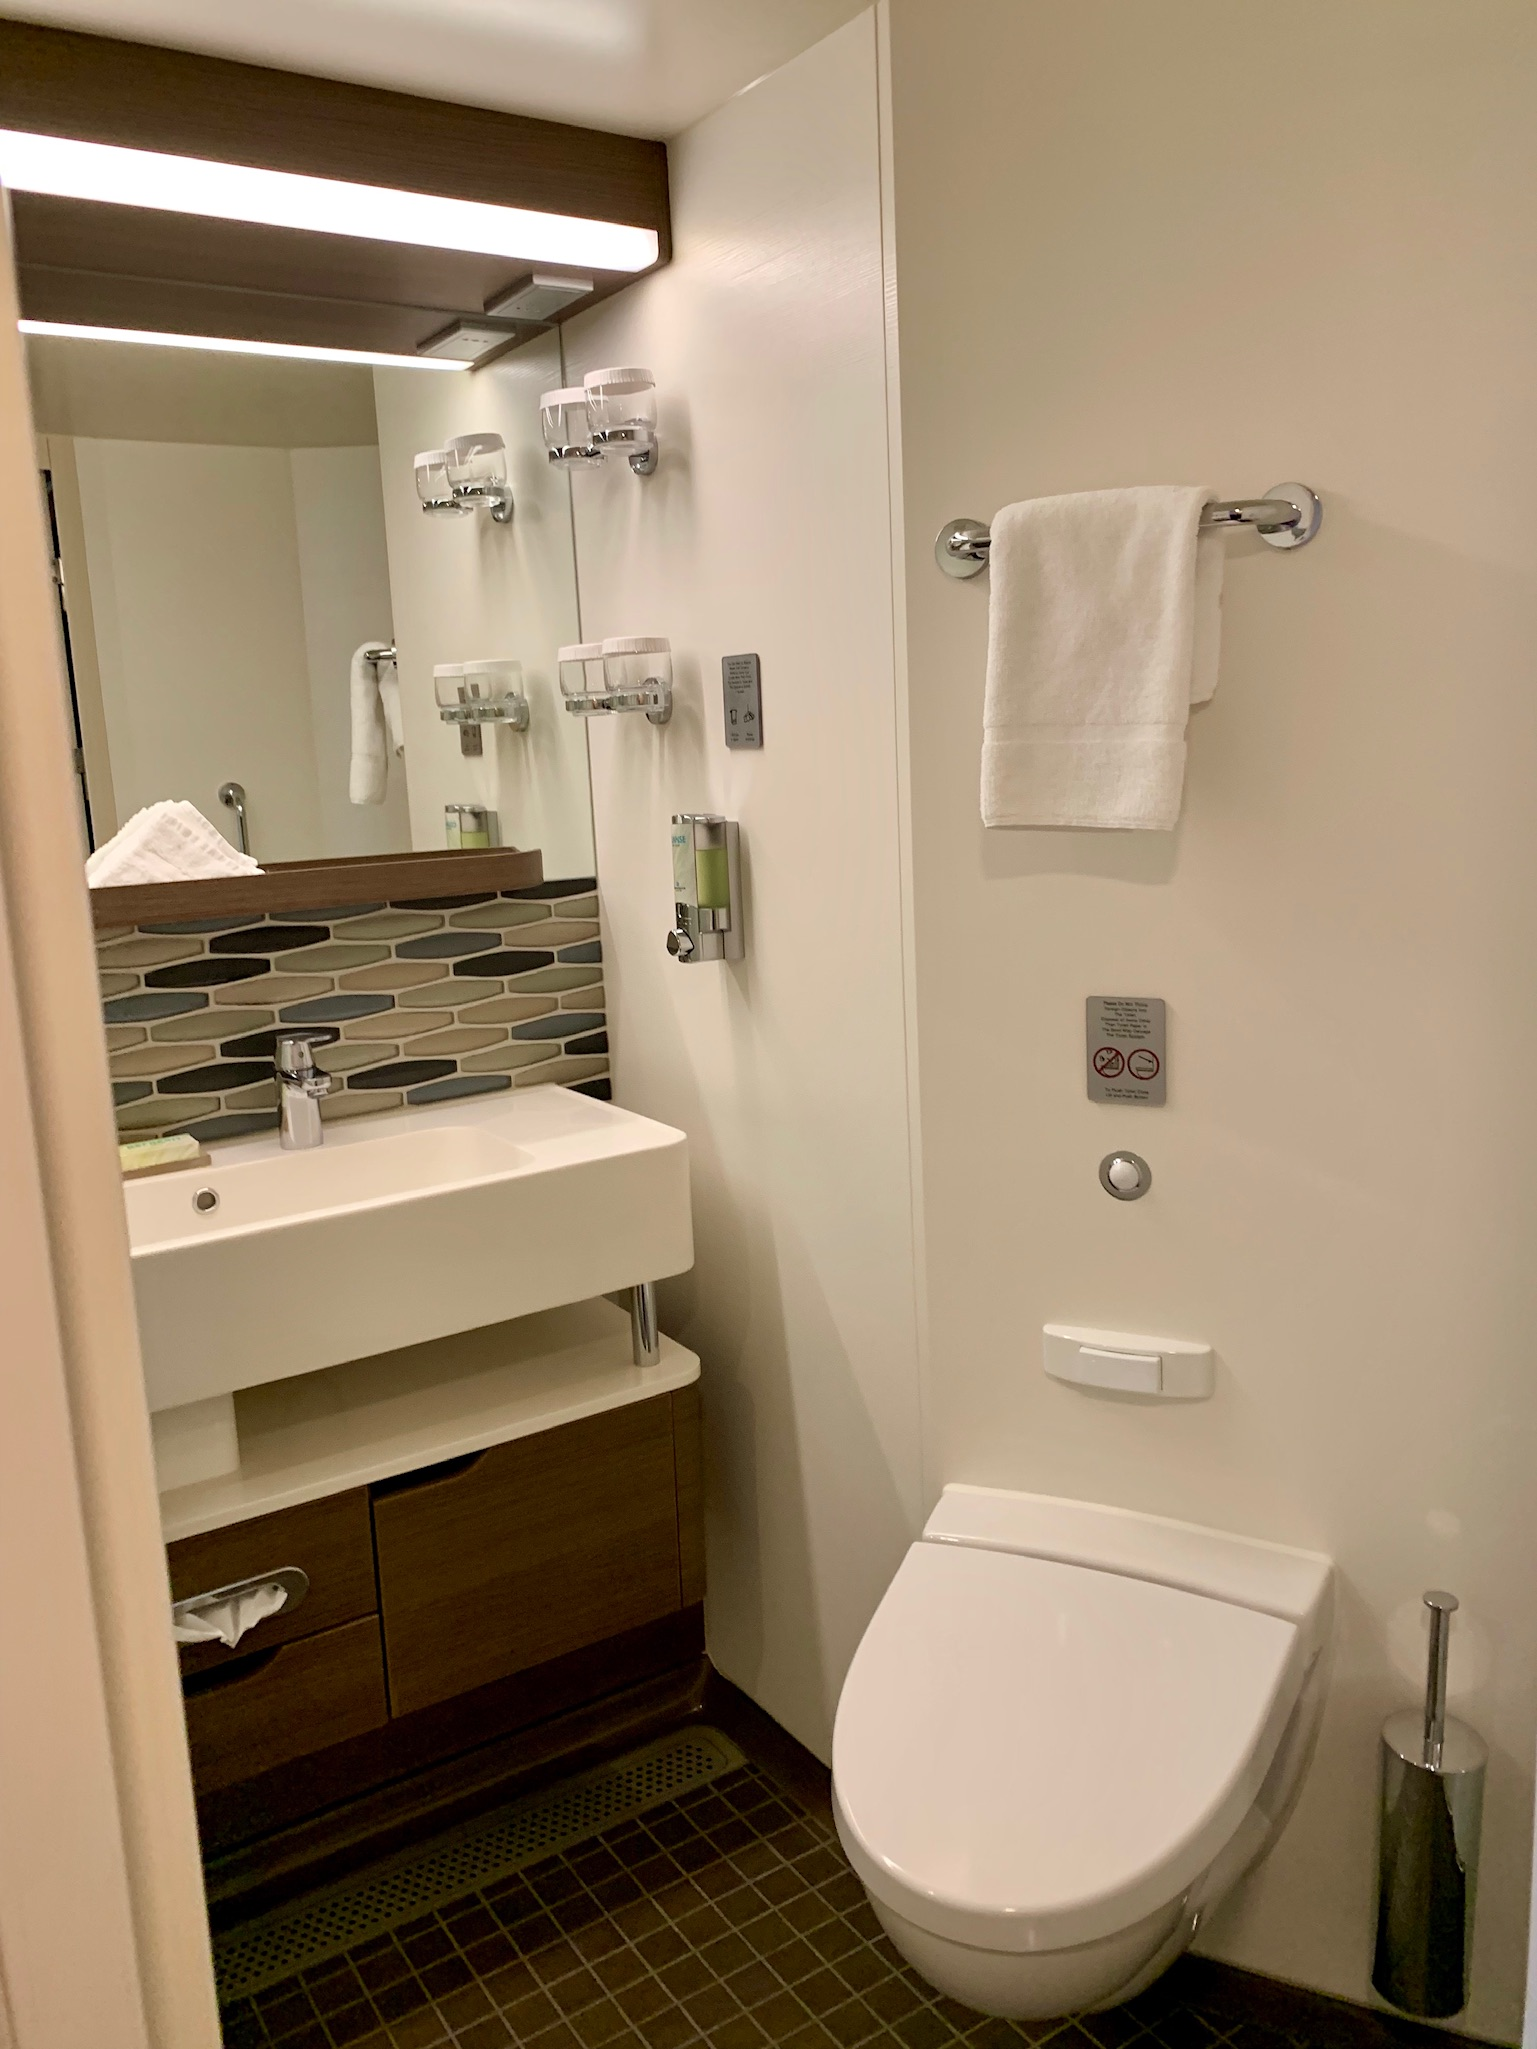 NCL Joy - Rooms - Mid Ship Mini Suite with Balcony bathroom toilet.jpg